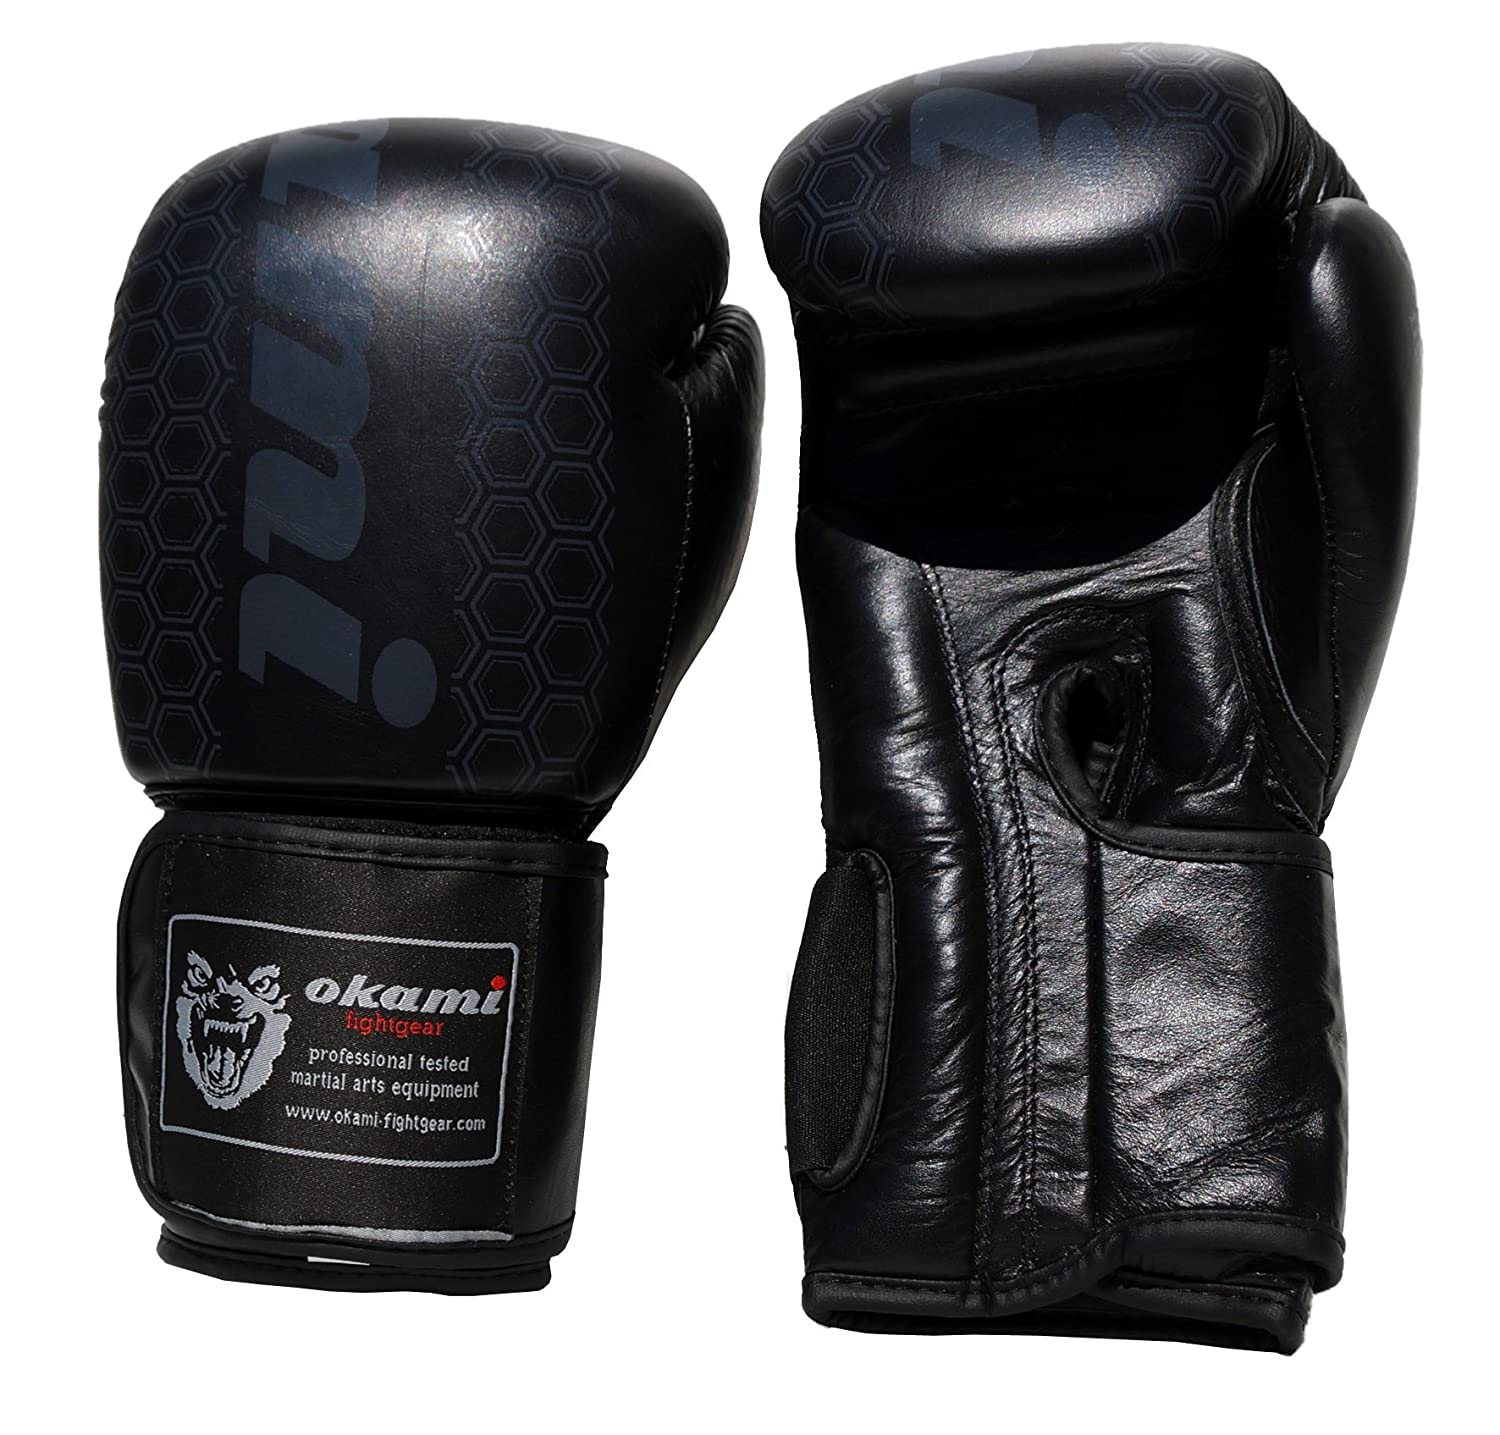 gloves Leder leather Elite MMA Muay Thai Black Edition OKAMI Boxhandschuhe